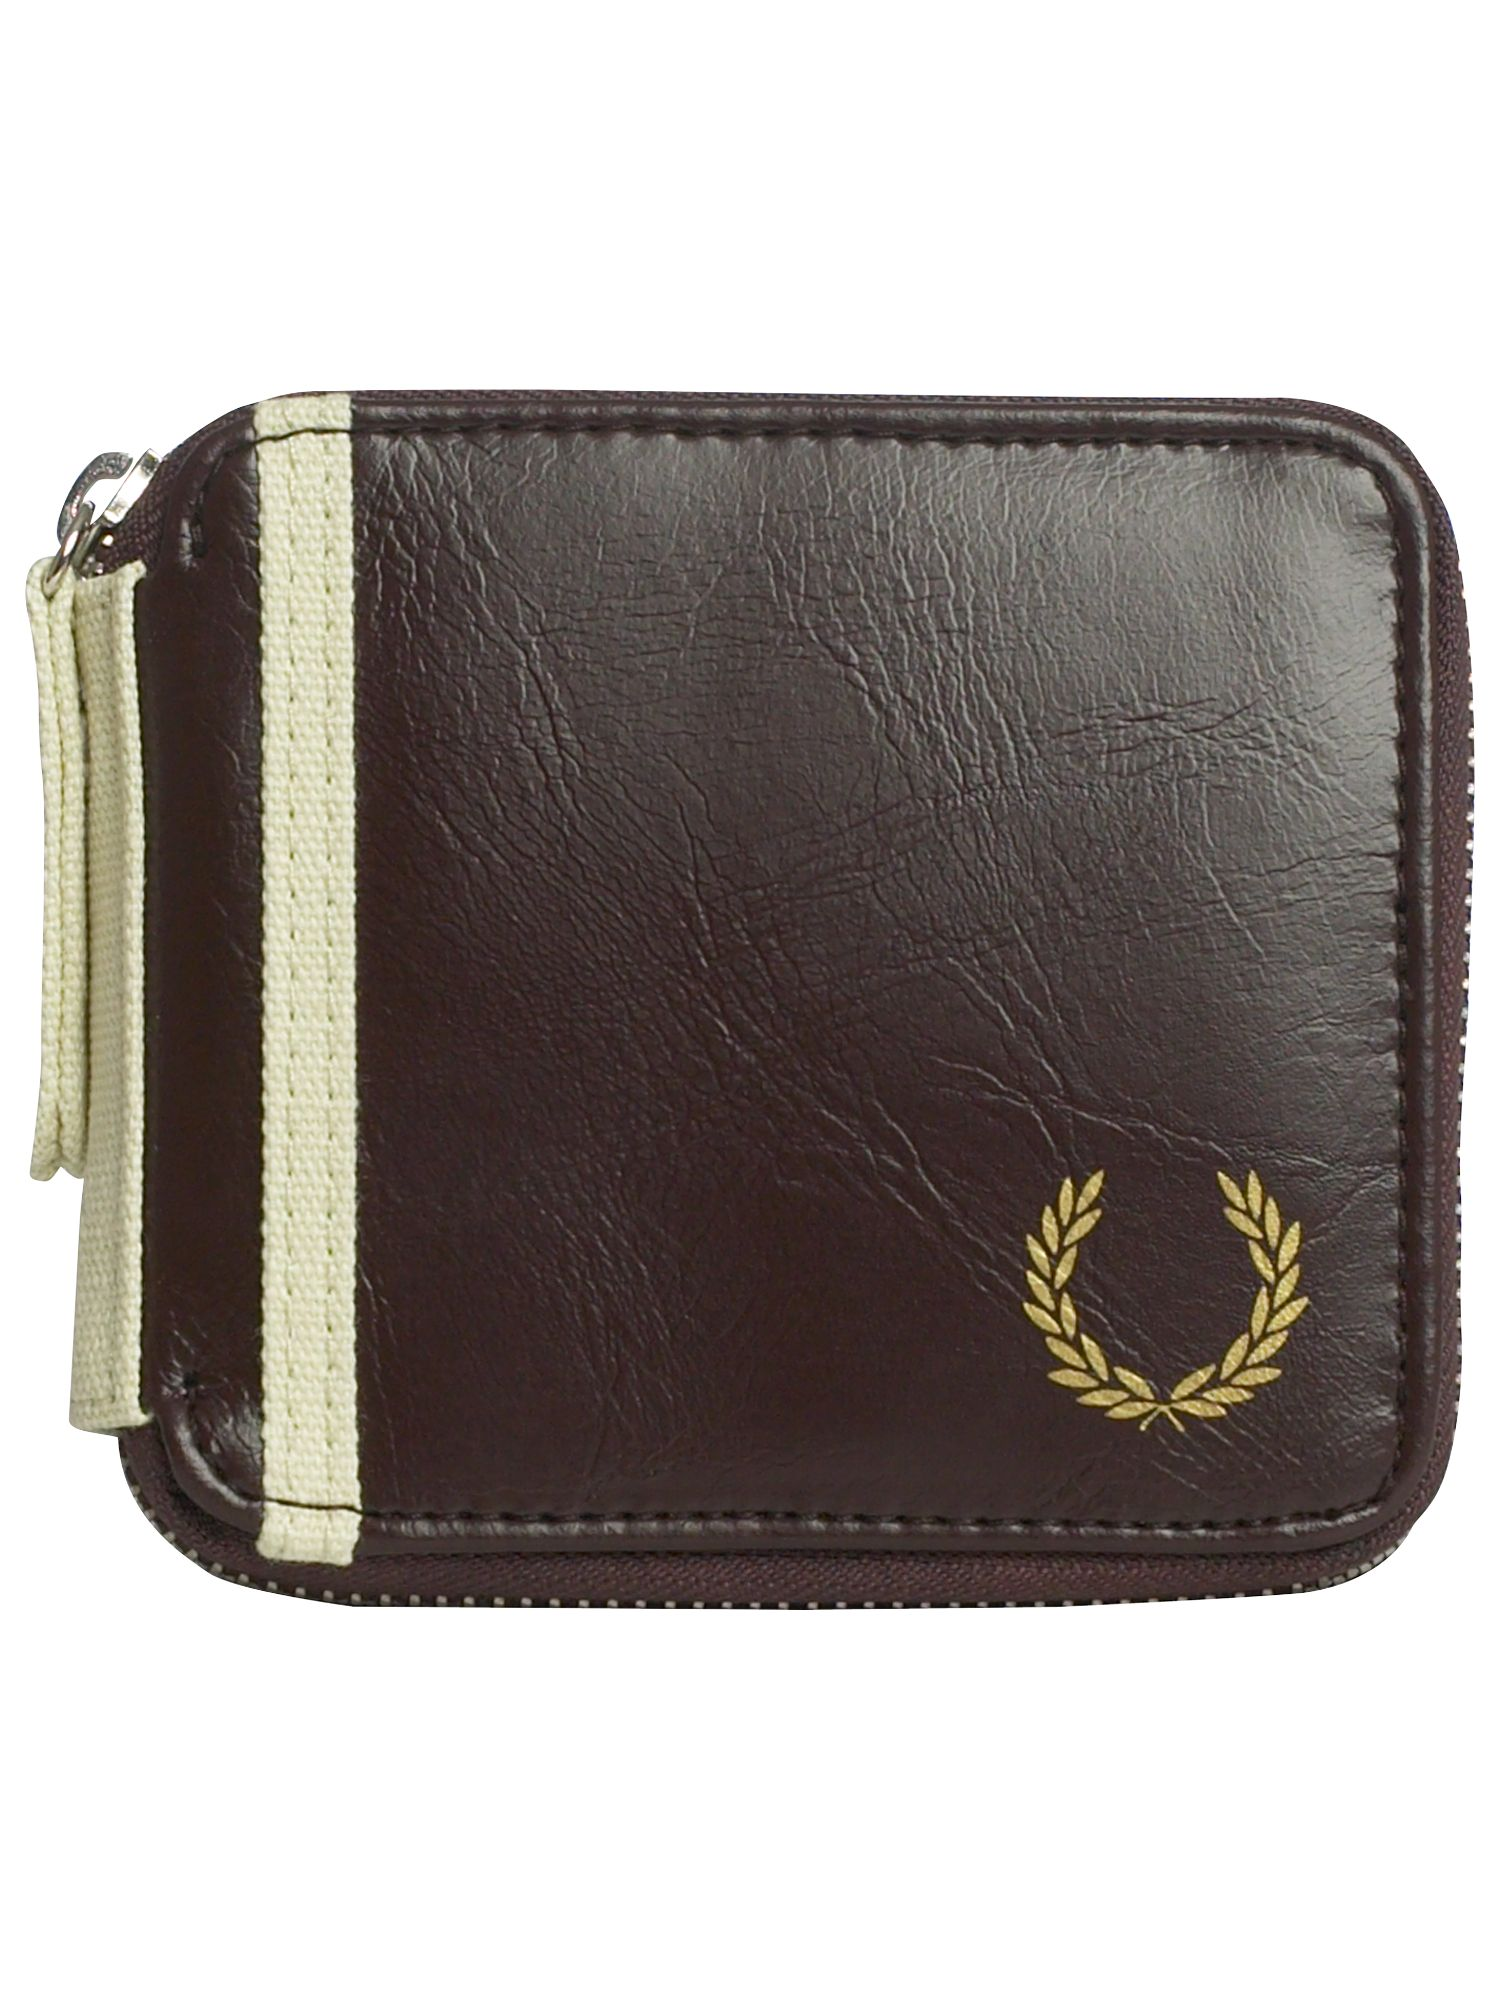 Fred Perry BILLFOLD AND COIN POUCH WALLET product image